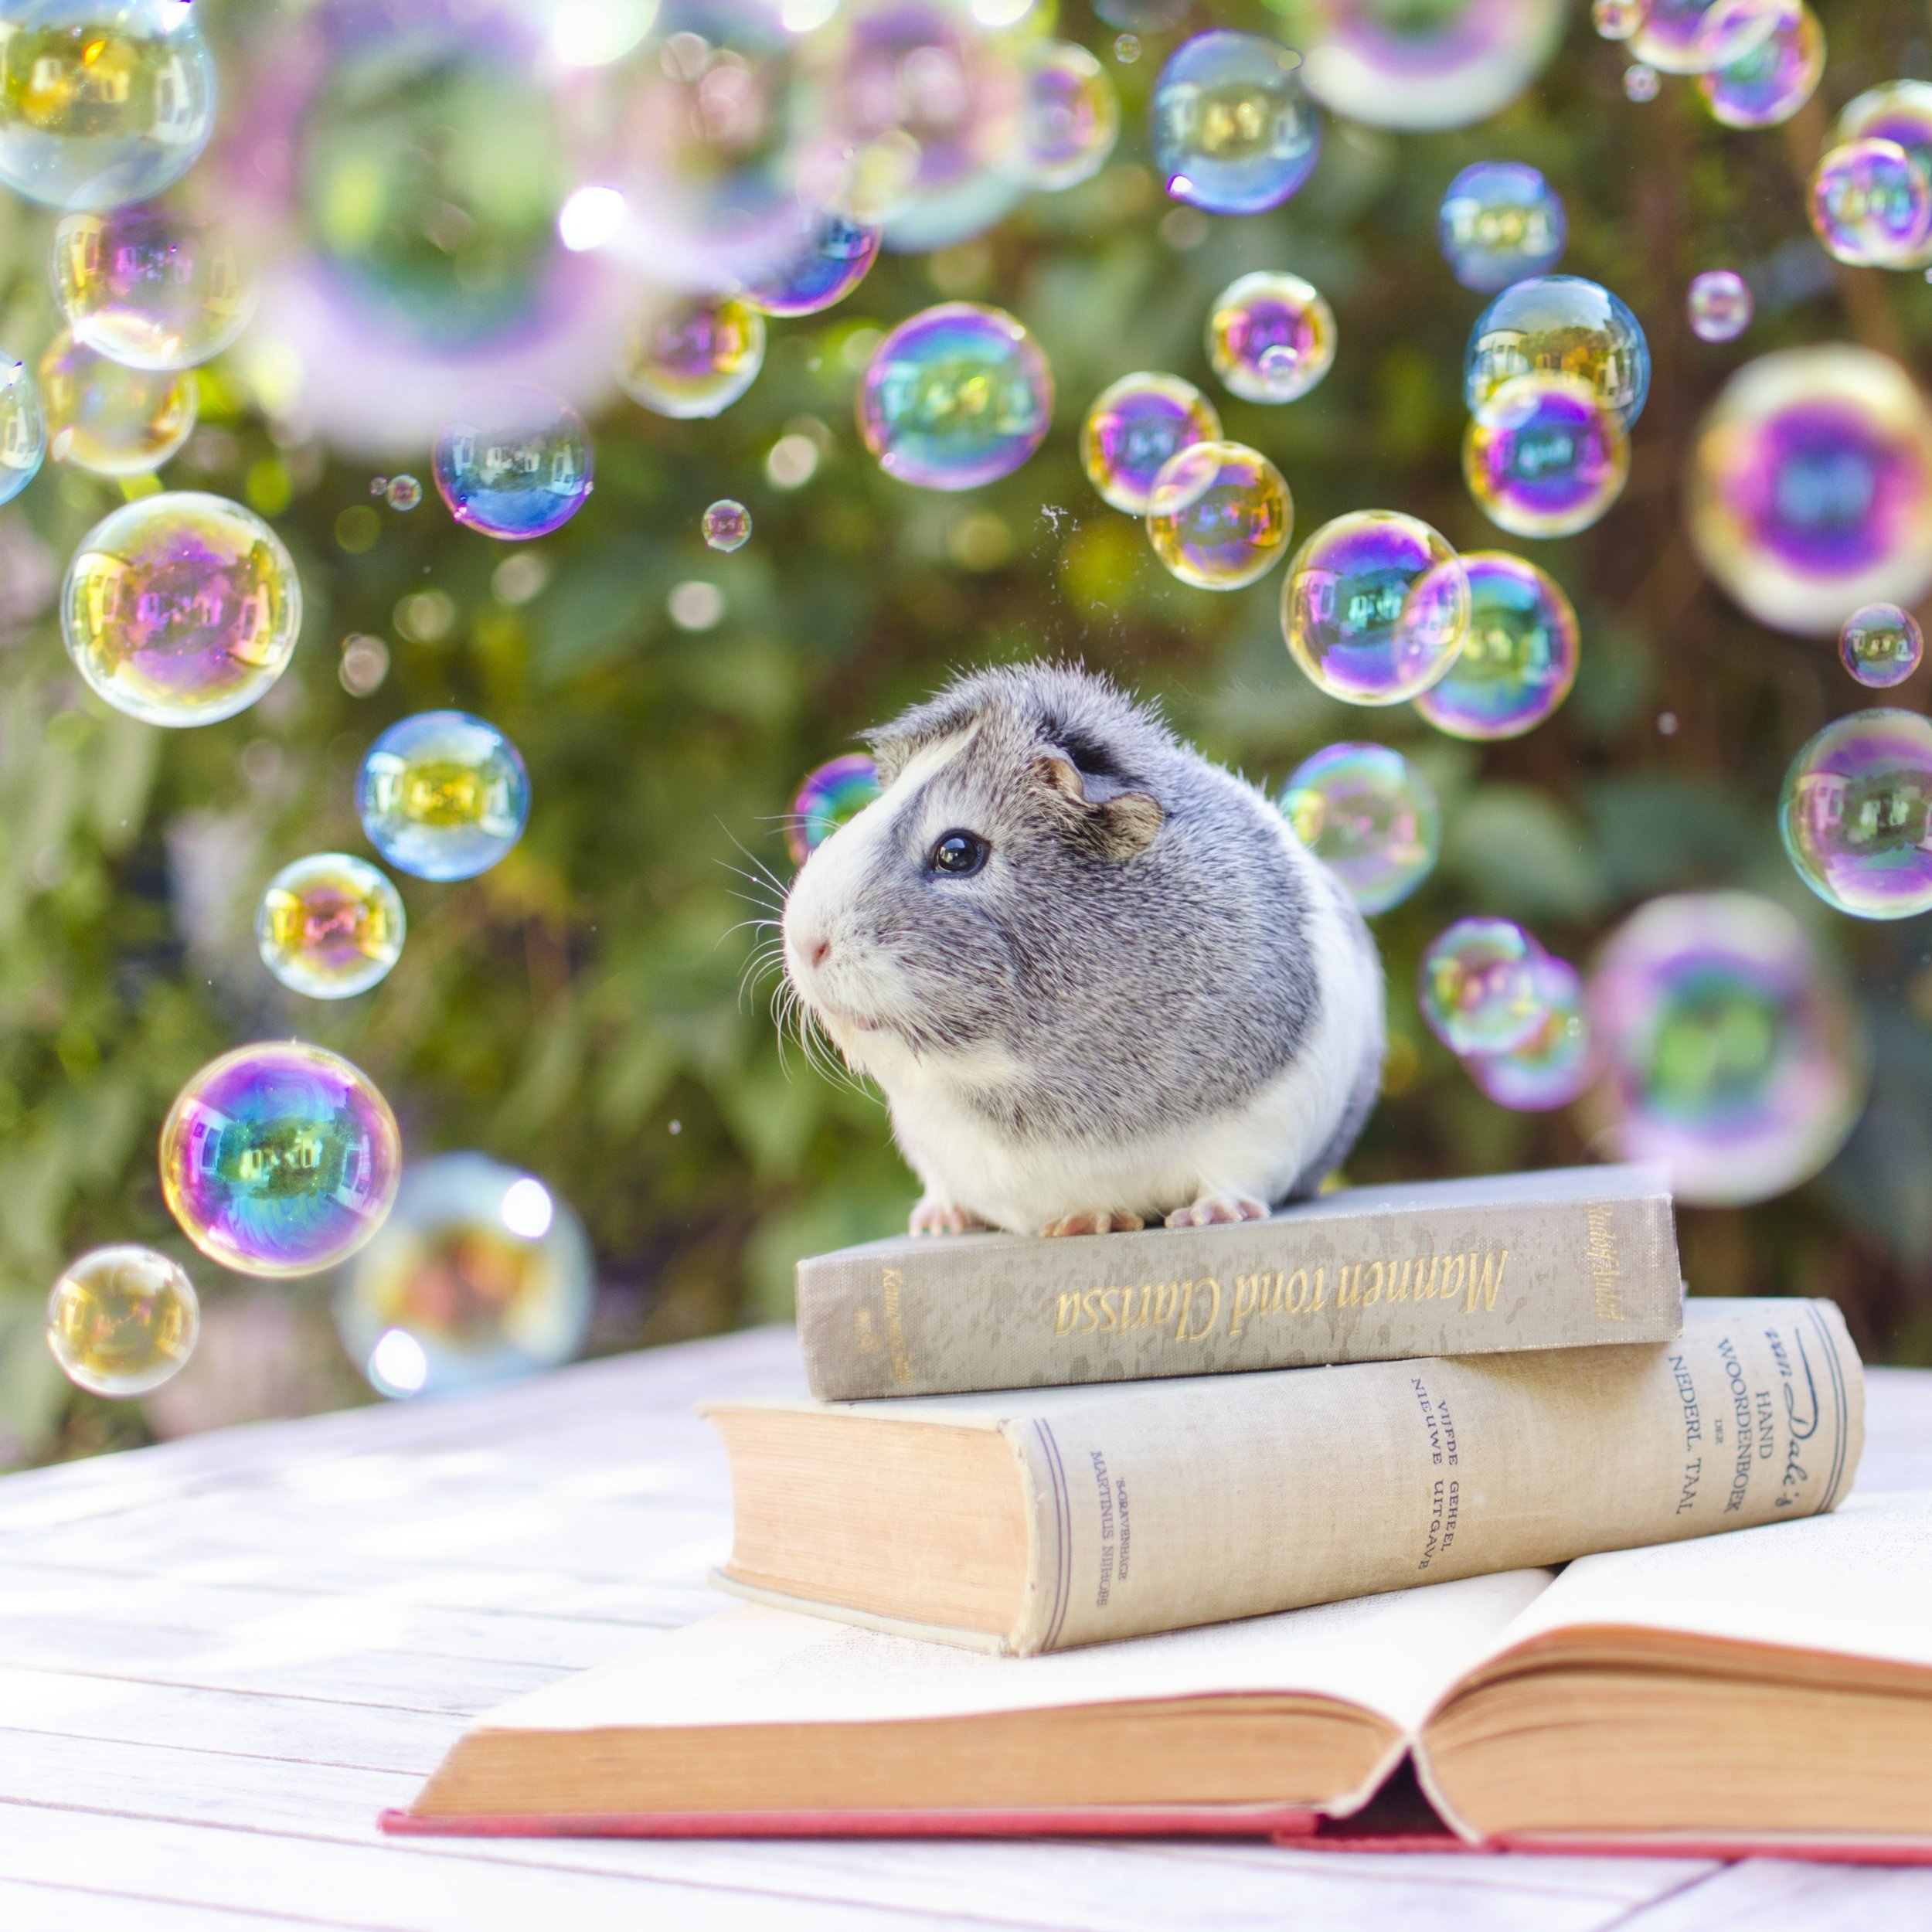 Pic by HotSpot Media - ADORABLE GUINEA PIG PICTURED IN FAIRYTALE-ESQUE SCENES - IN PIC - This adorable guinea pig, named Mieps, shows off her photogenic side in this series of fairytale-esque pictures, captured by photographer Marloes van Antwerpen. - From balancing on top of a candy floss cloud to hovering over a boiling cauldron, this adorable guinea pig is photographed in an variety of fairytale-esque scenes. The three- year- old rodent named Mieps, shows off her photogenic side as she playfully poses for the camera in a series of cute snaps. The fun photographs were taken by 23-year-old Dutch photographer Marloes van Antwerpen. Marloes says: ¿ÄúI bought Mieps in a pet store three years ago and it was love at first sight....SEE HOTSPOT MEDIA COPY 0121 551 1004